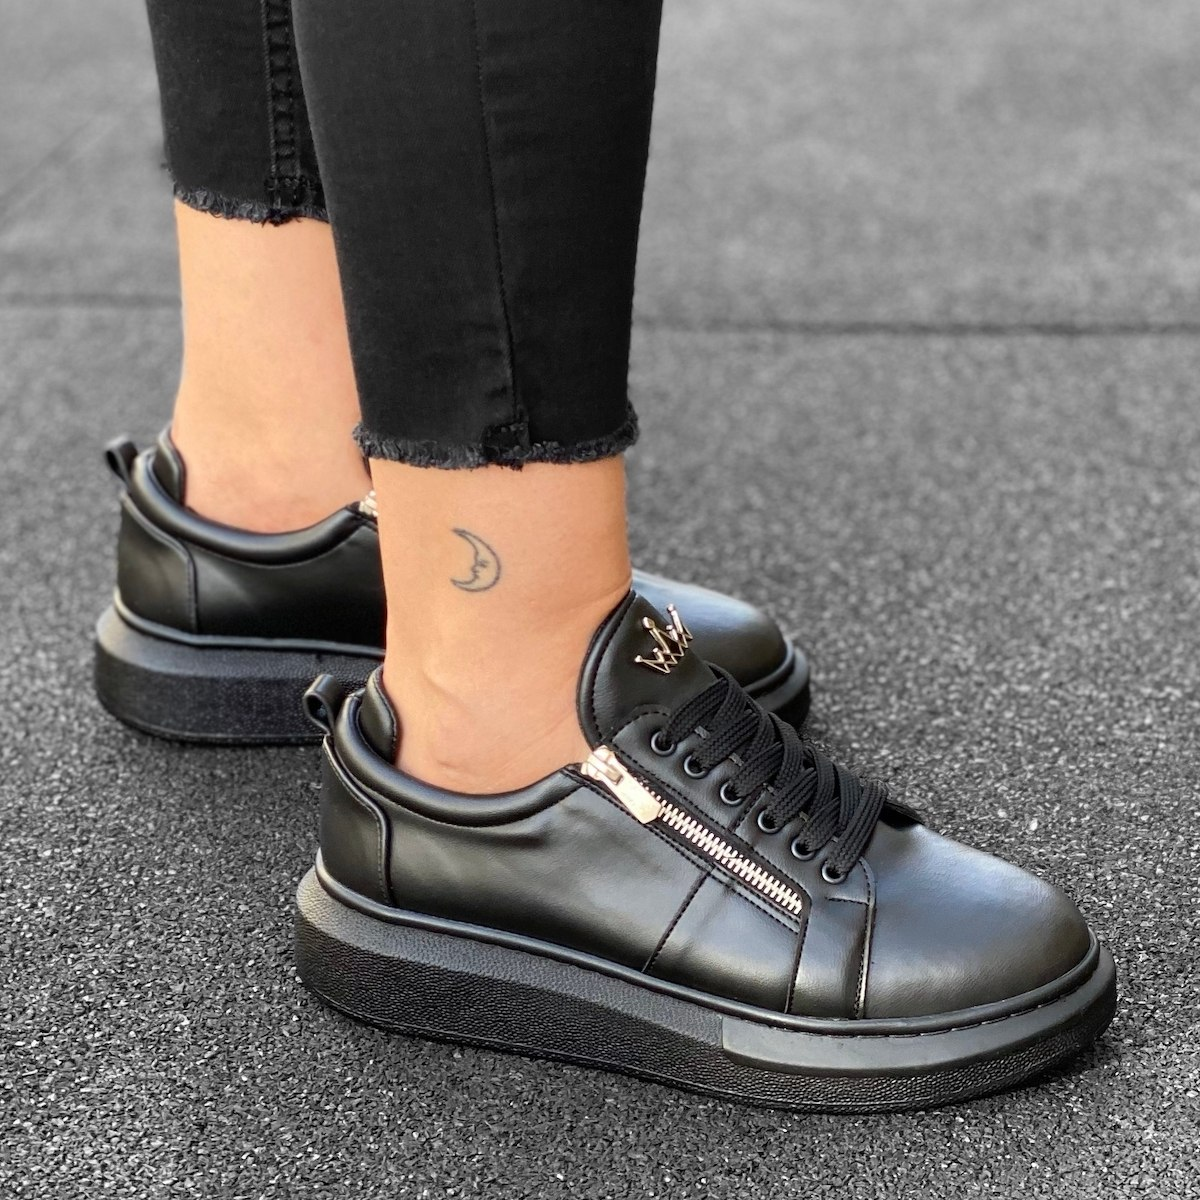 Woman Hype Sole Zipped Style Sneakers in Black